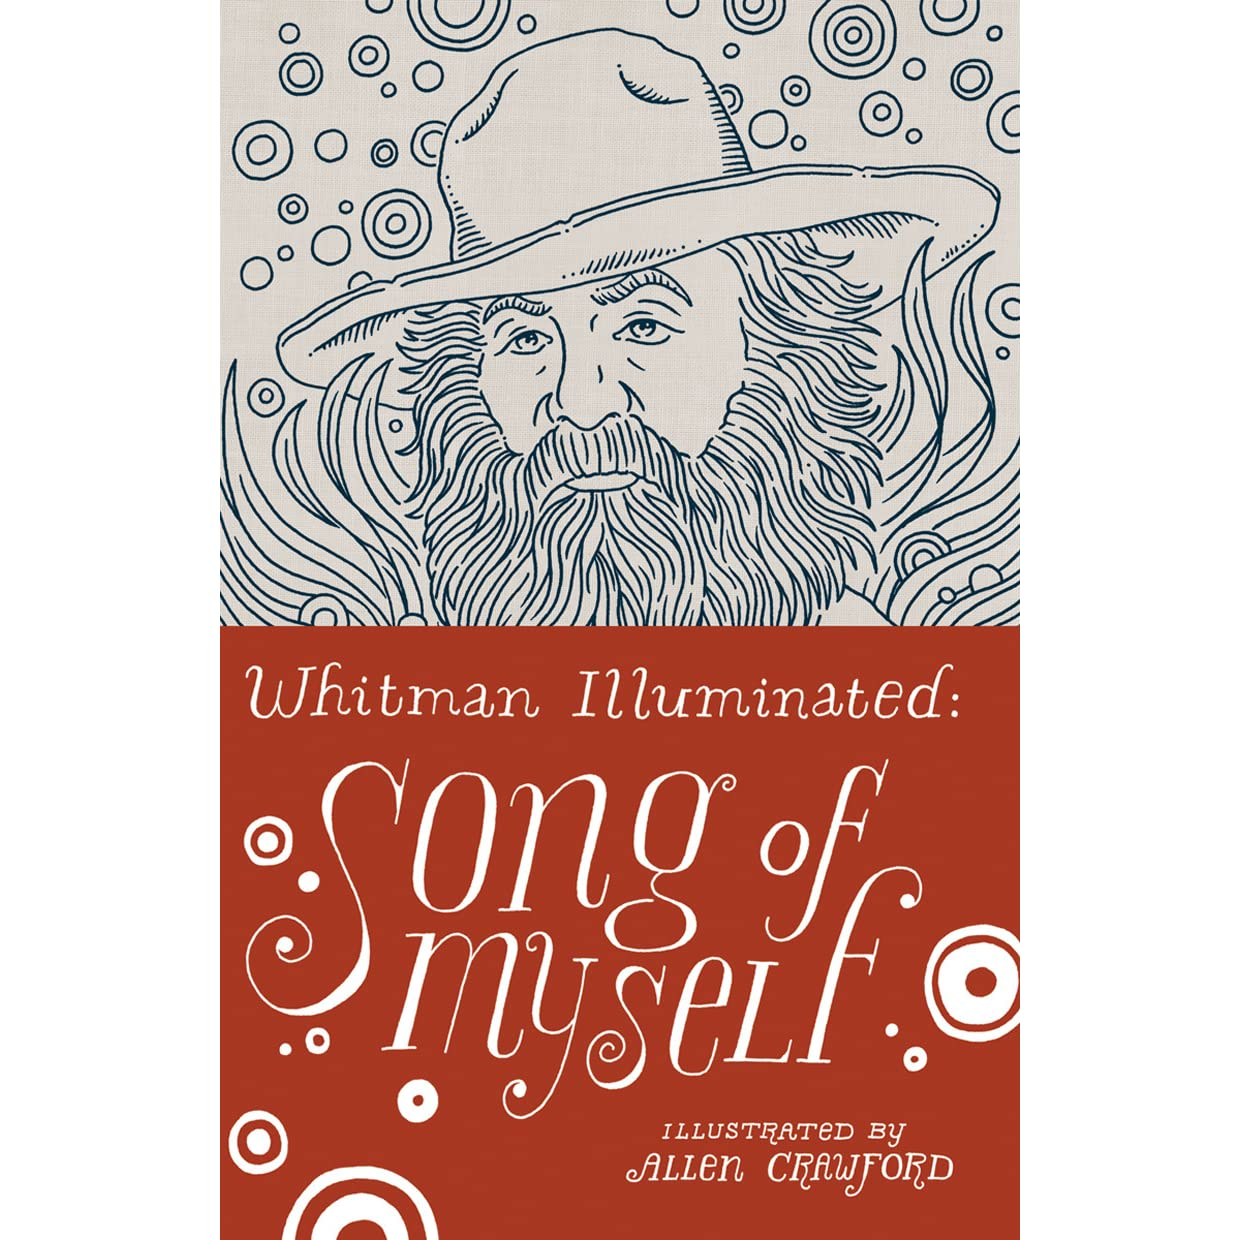 essay on walt whitman song of myself Buy exclusive song of myself essay cheap song of myself by walt whitman's contains a total of contains 52 verses describing the feeling of life and death.